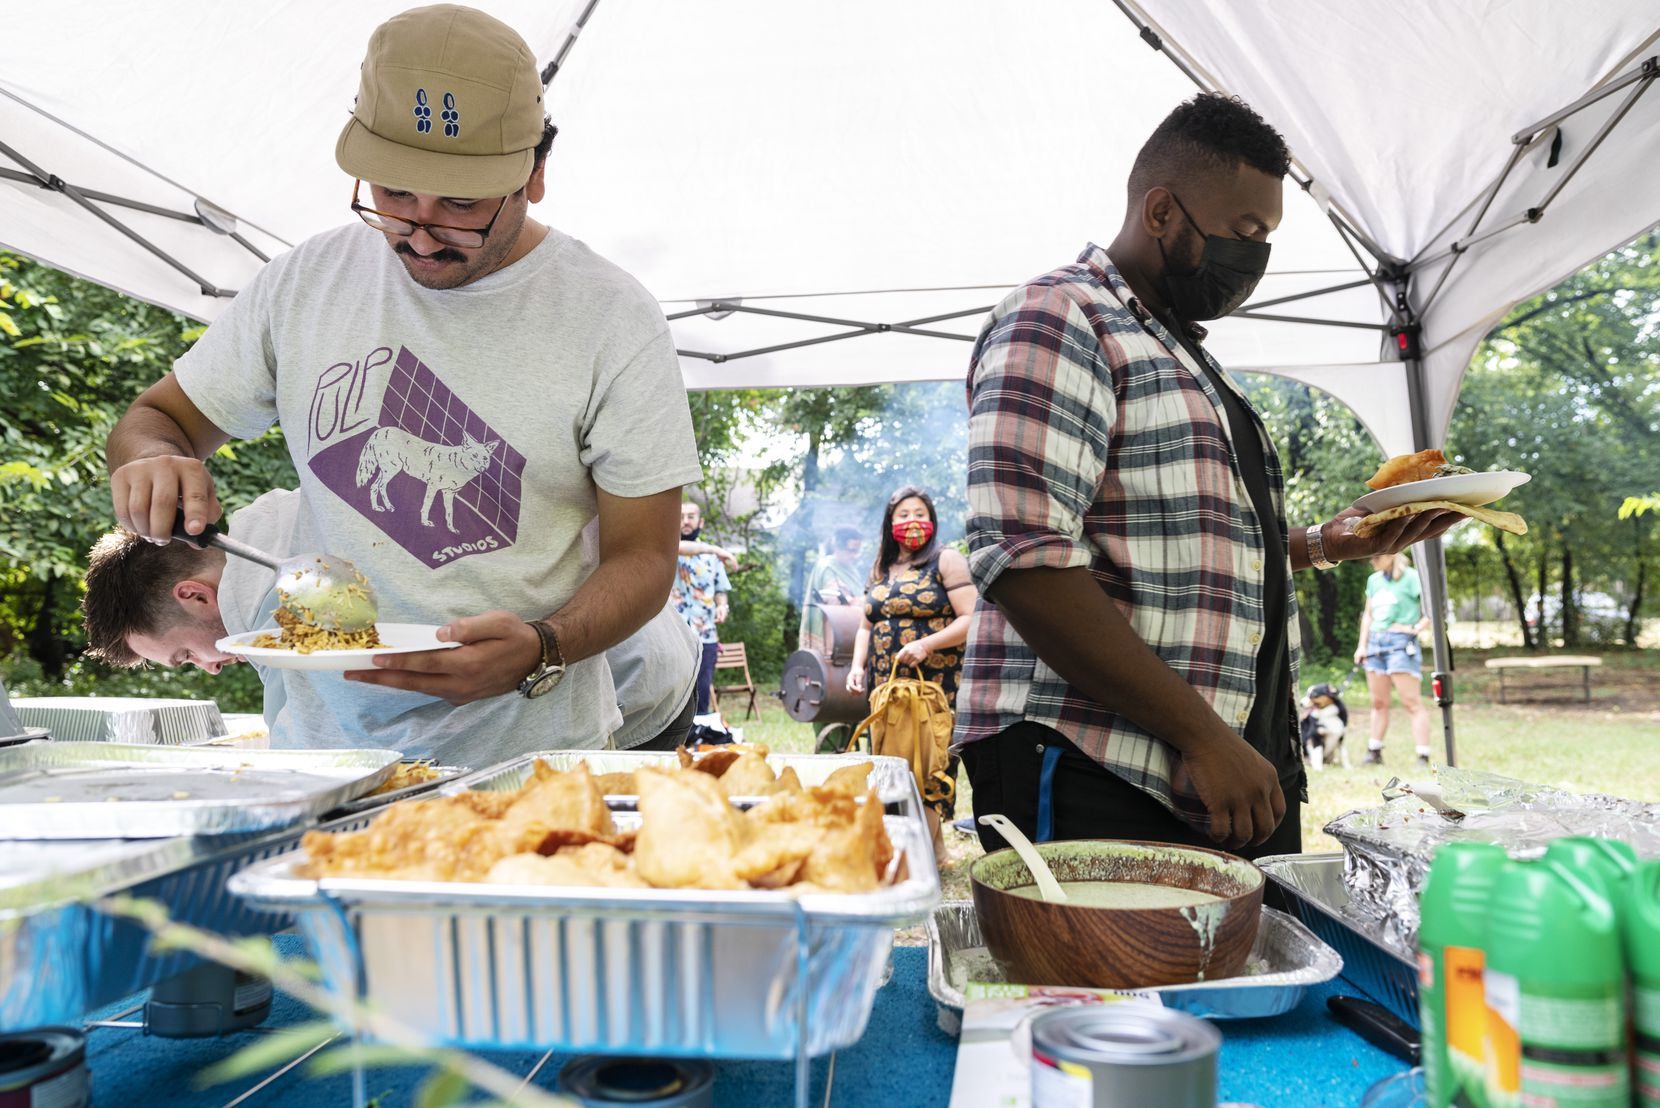 Daniel F., 28, left, and Abdelhalim Awadalla, 28, serve themselves food during a PunjabiTex BBQ popup, conducted by Chef Usama Khalid, at Sweet Pass Sculpture Park in Dallas.